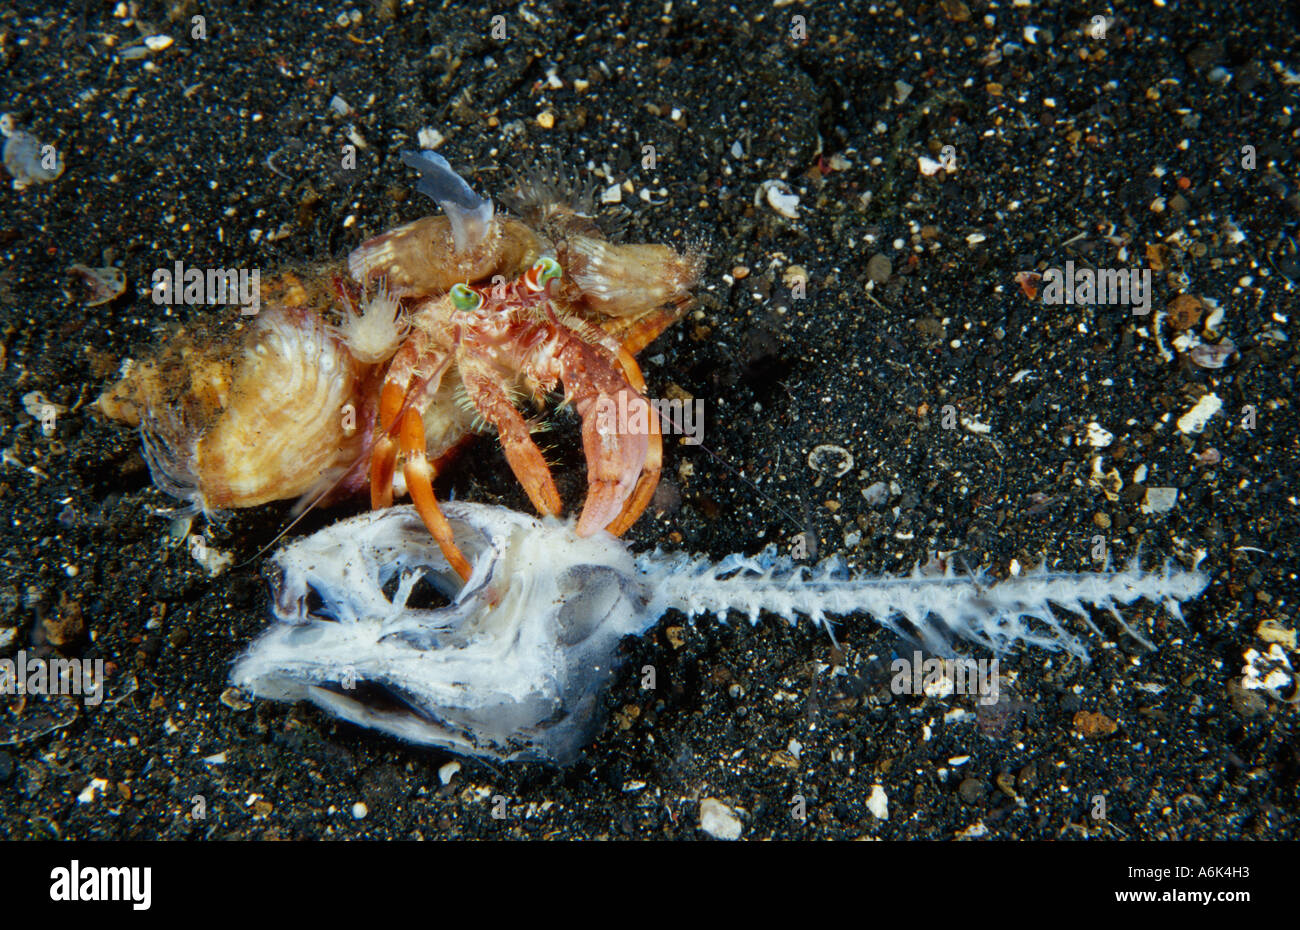 hermit crab eating dead fish, Indonesia, Lembeh Straits - Stock Image